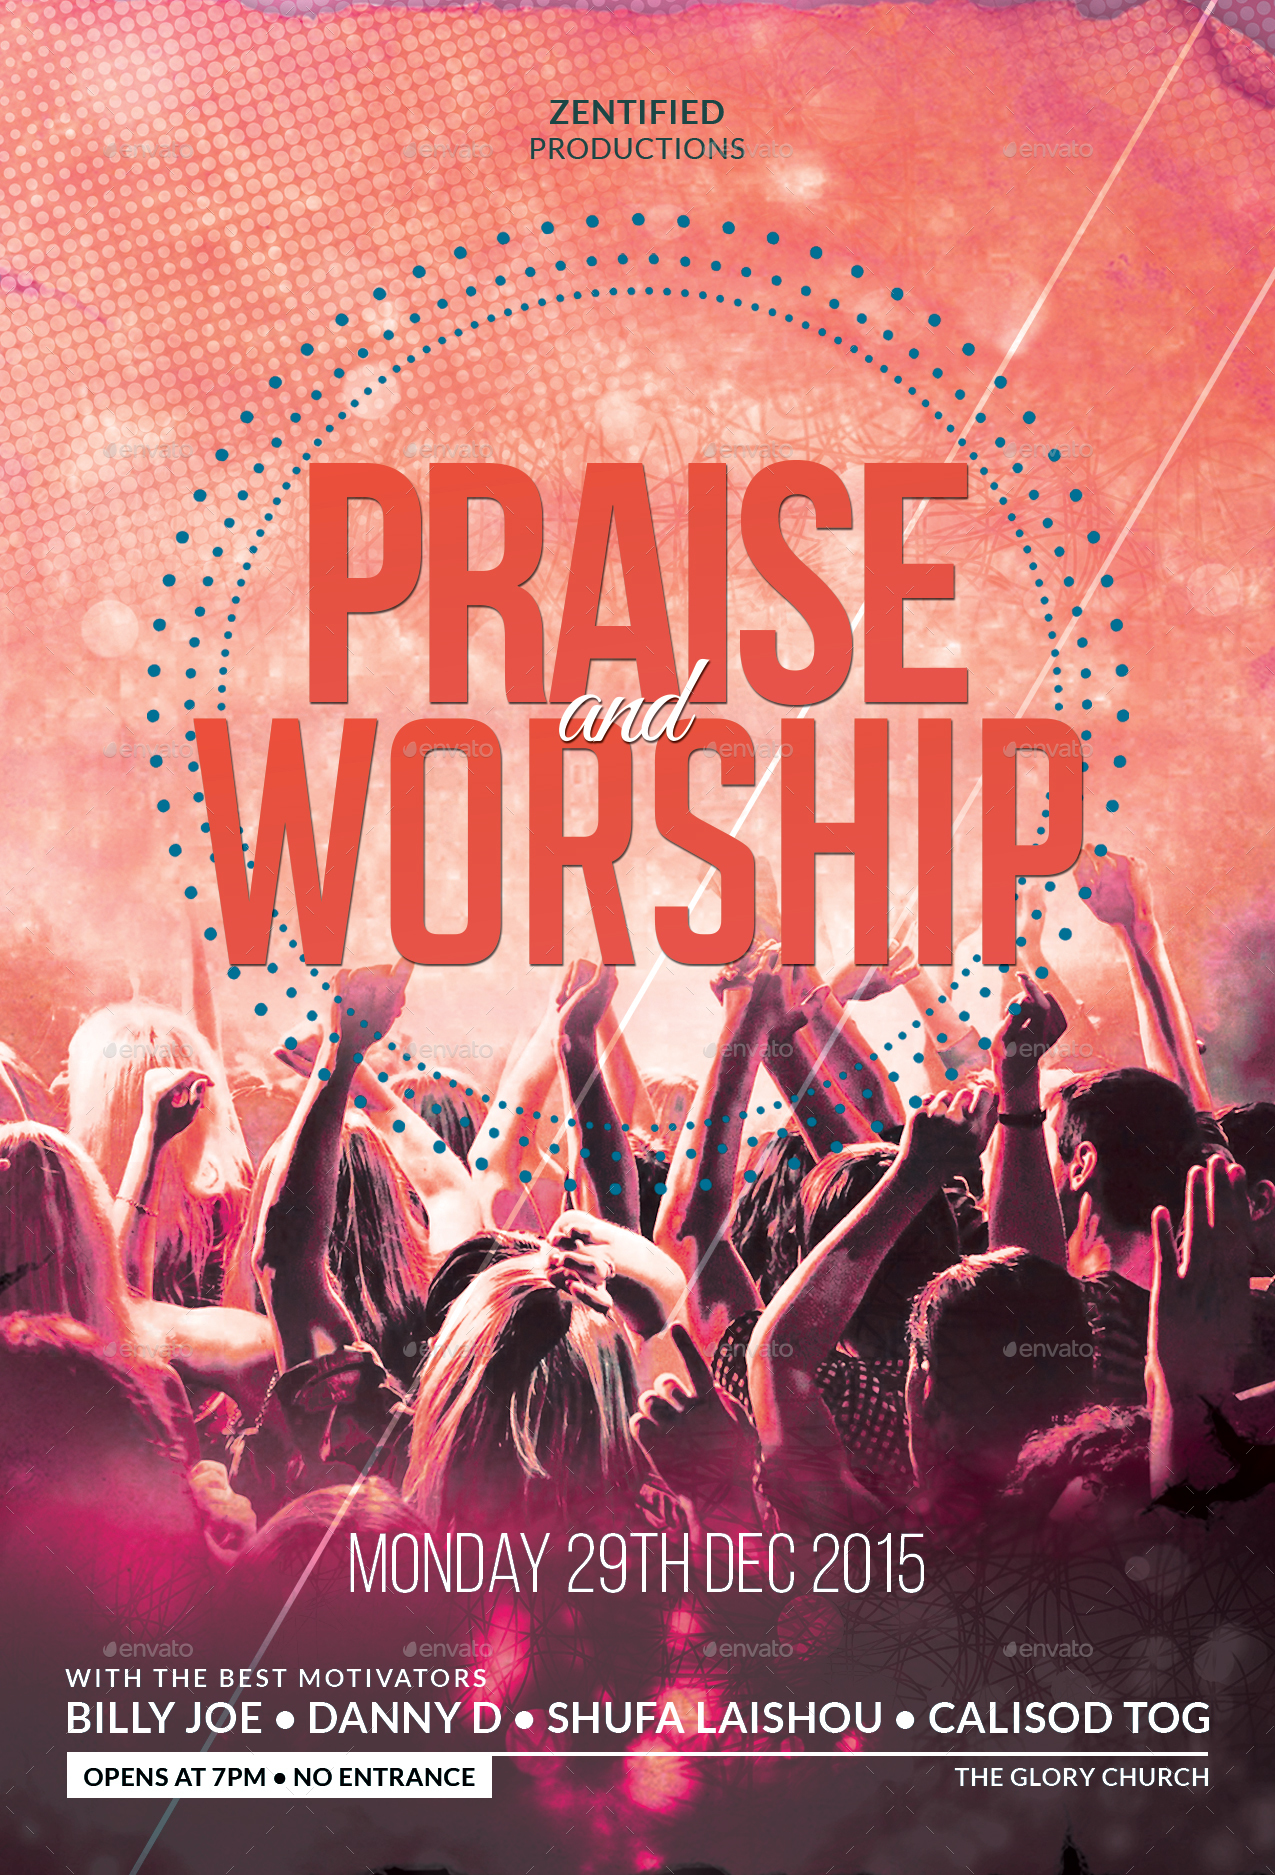 Praise And Worship Flyer by zentify  GraphicRiver